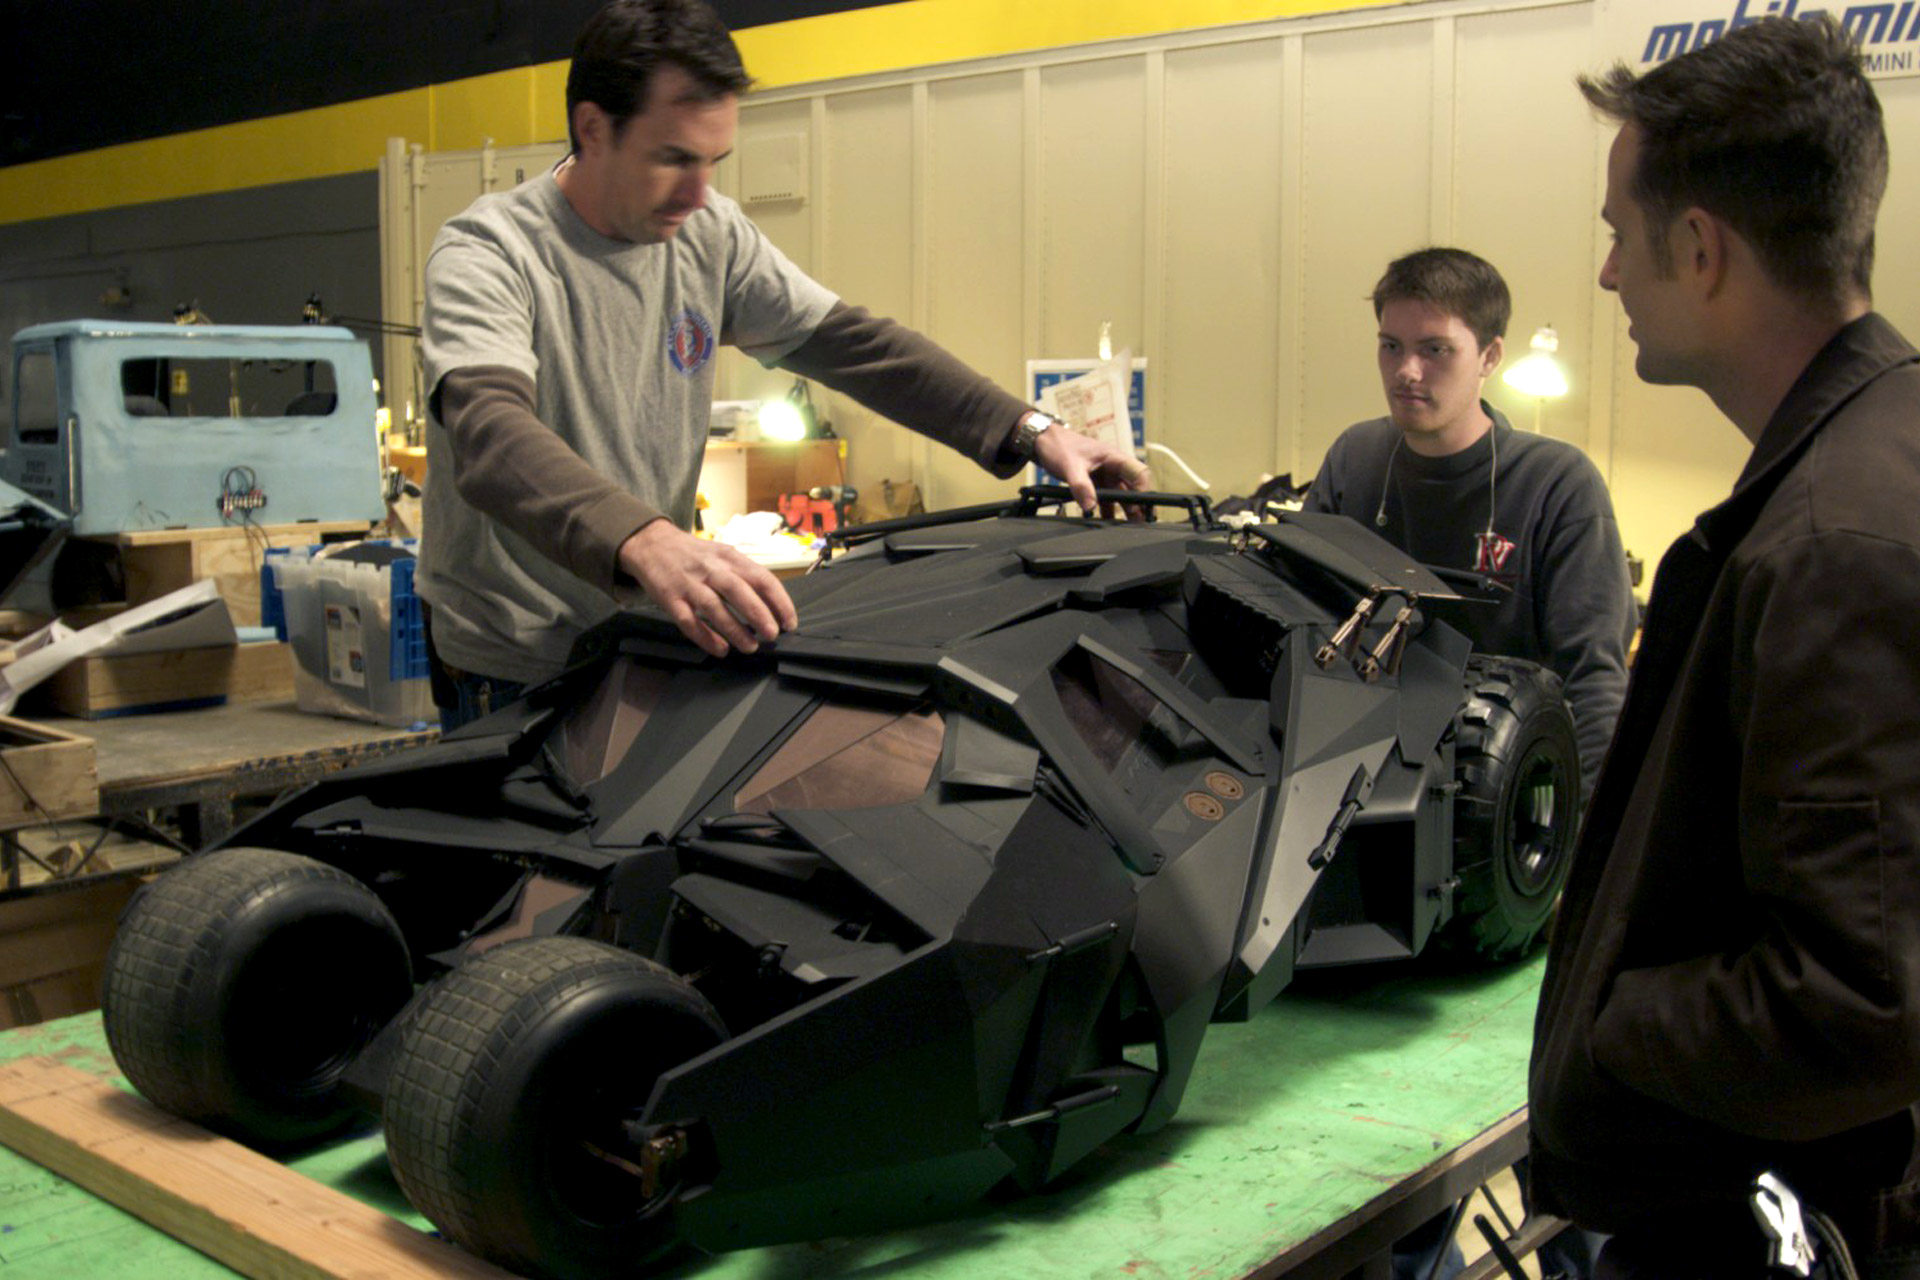 731_1532_darkknight_onset.jpg